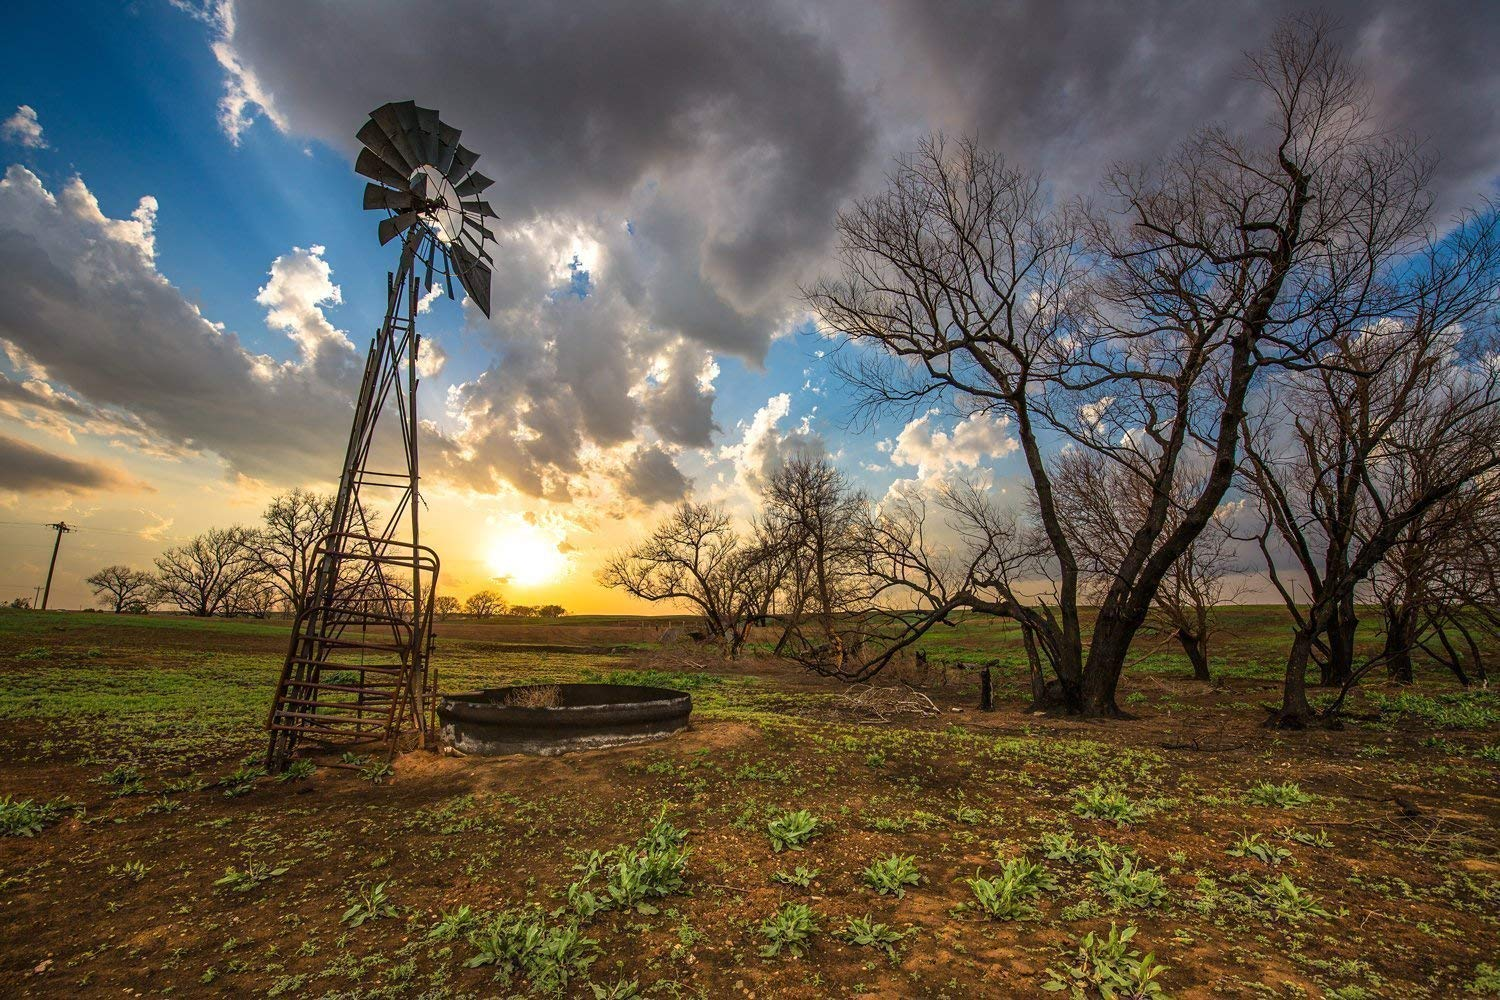 Western Wall Art Photography Print - Picture of Windmill and Charred Trees at Sunset in Southern Kansas Country Home Decor 5x7 to 30x45